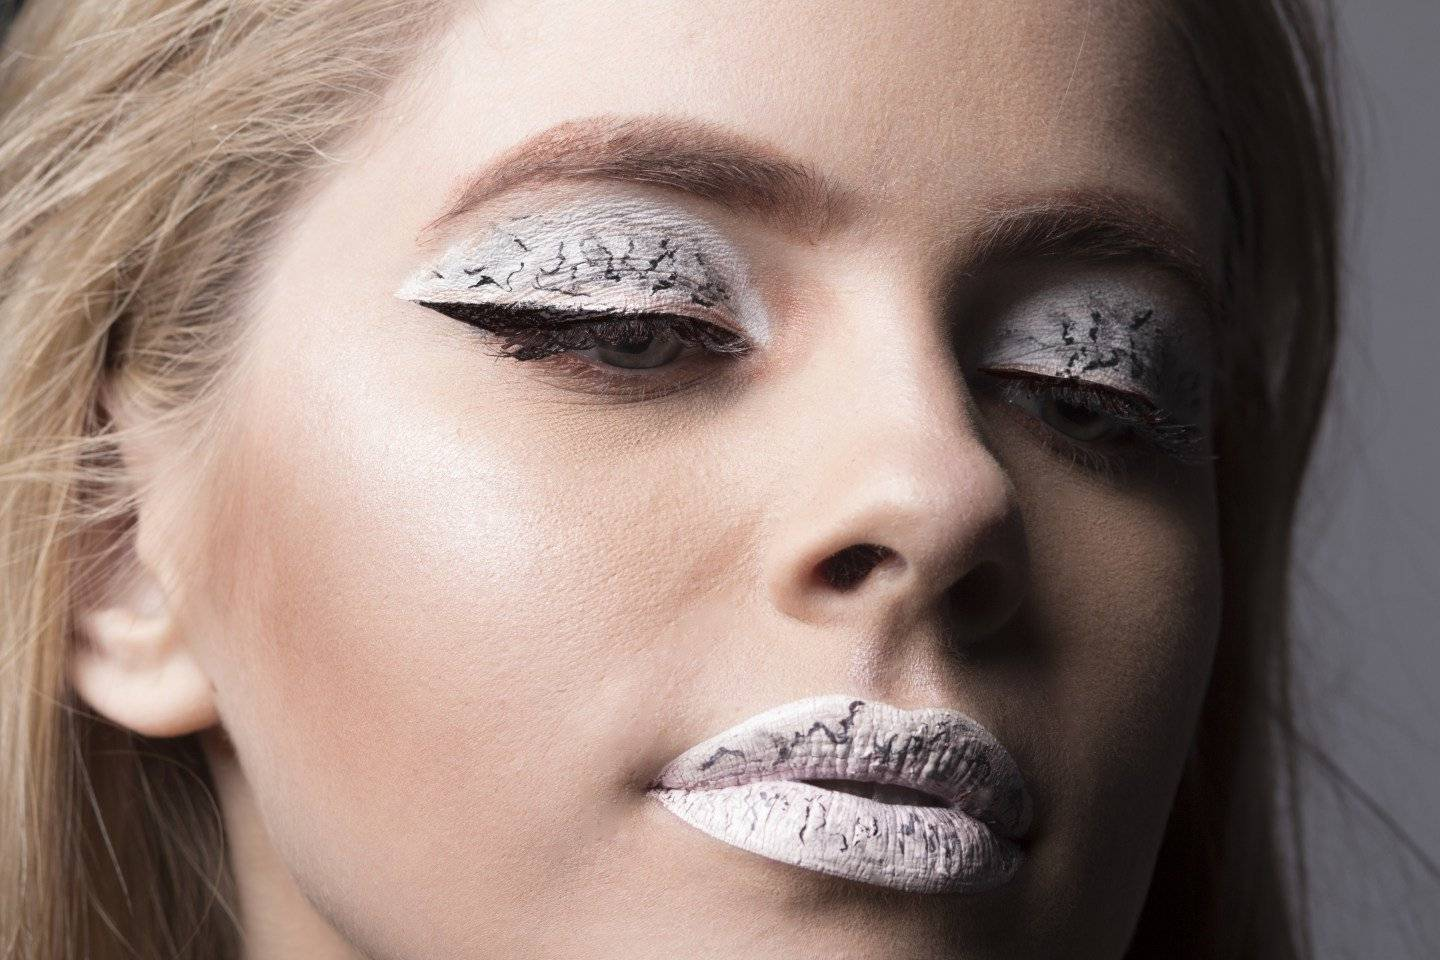 Apply marble lipstick and eyeshadow